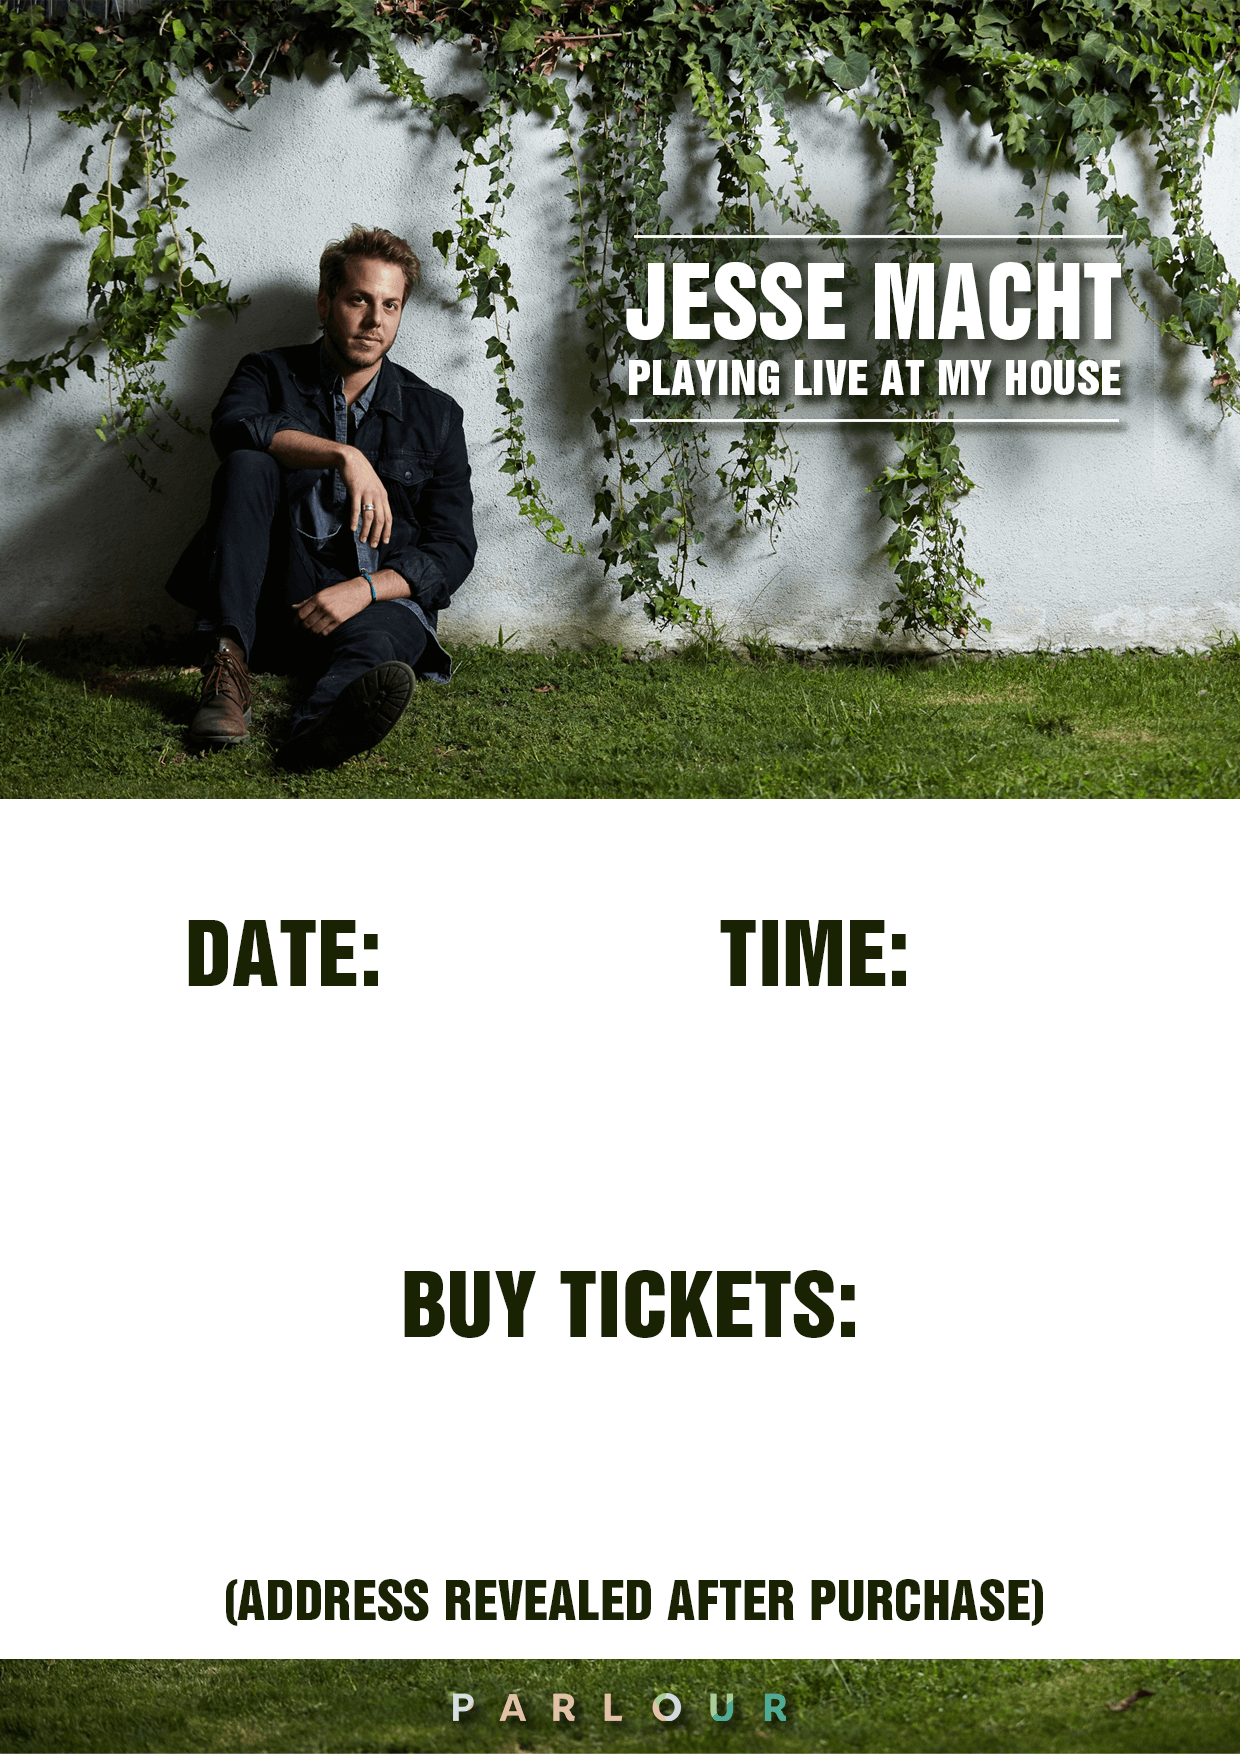 Jesse Macht Poster.png